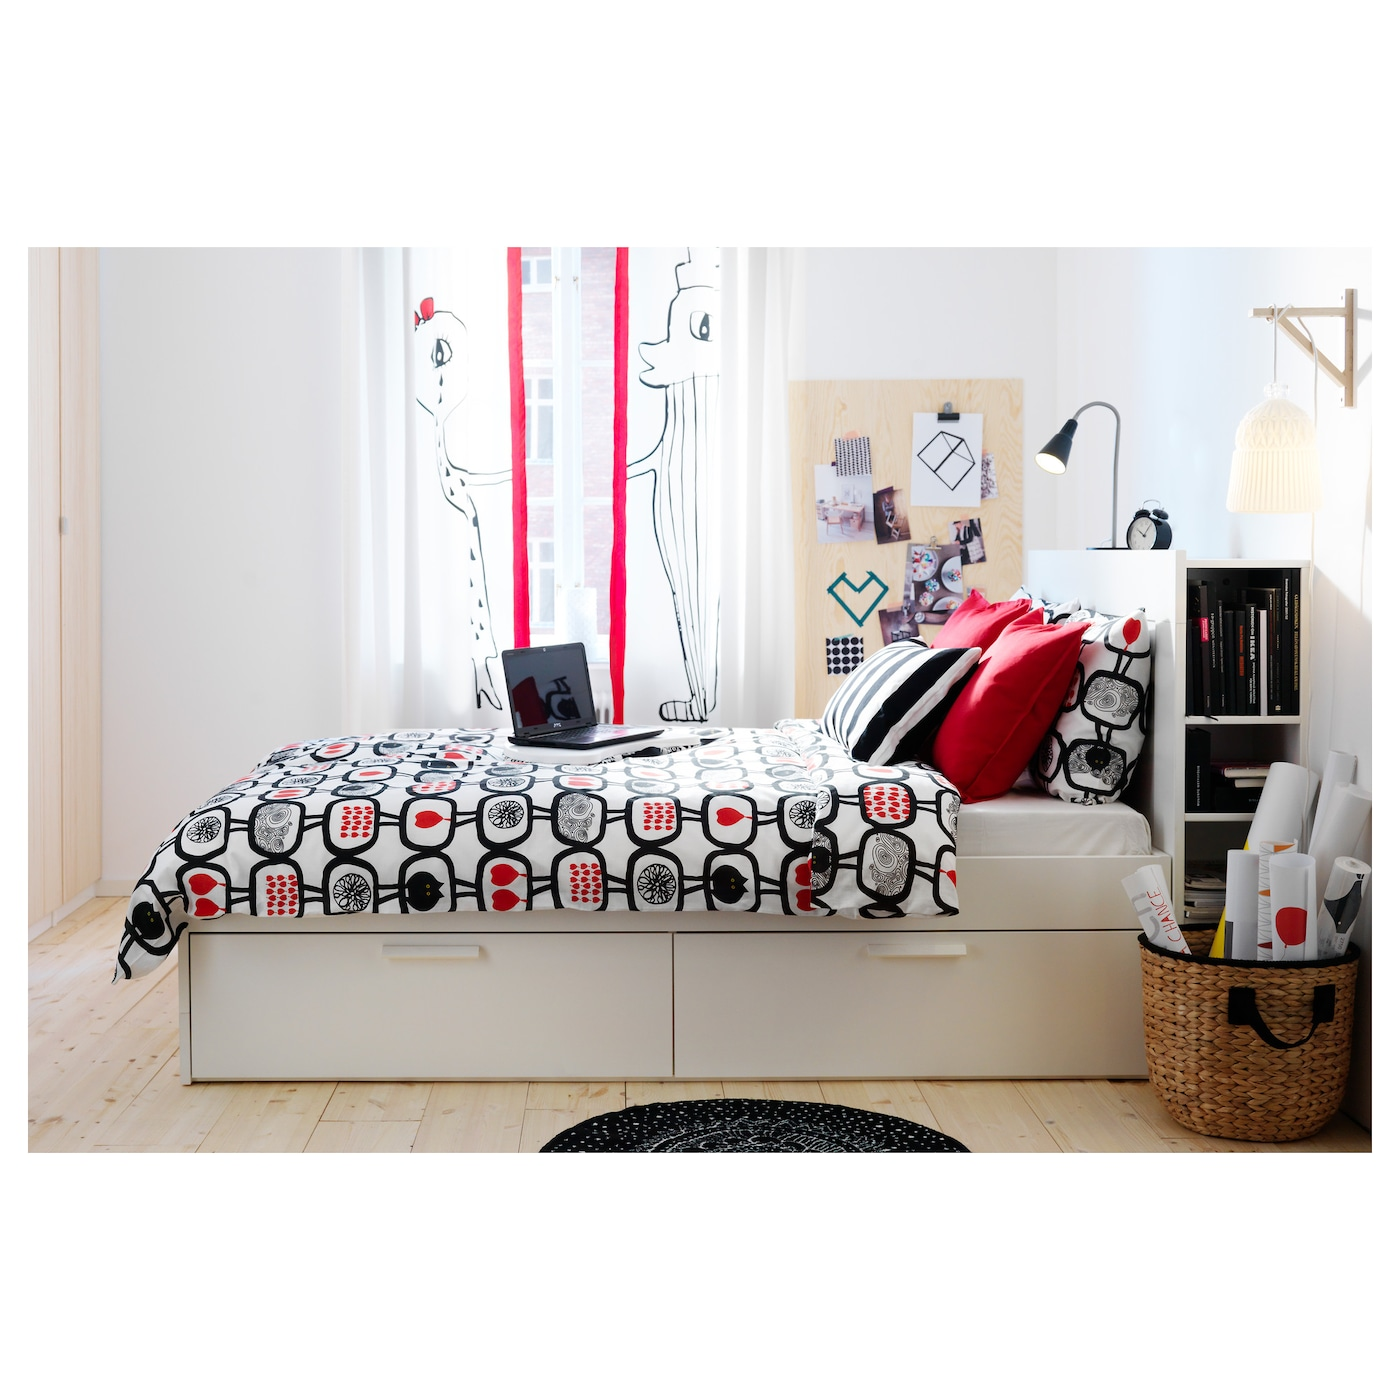 brimnes cadre de lit rangement t te de lit blanc 160x200 cm ikea. Black Bedroom Furniture Sets. Home Design Ideas